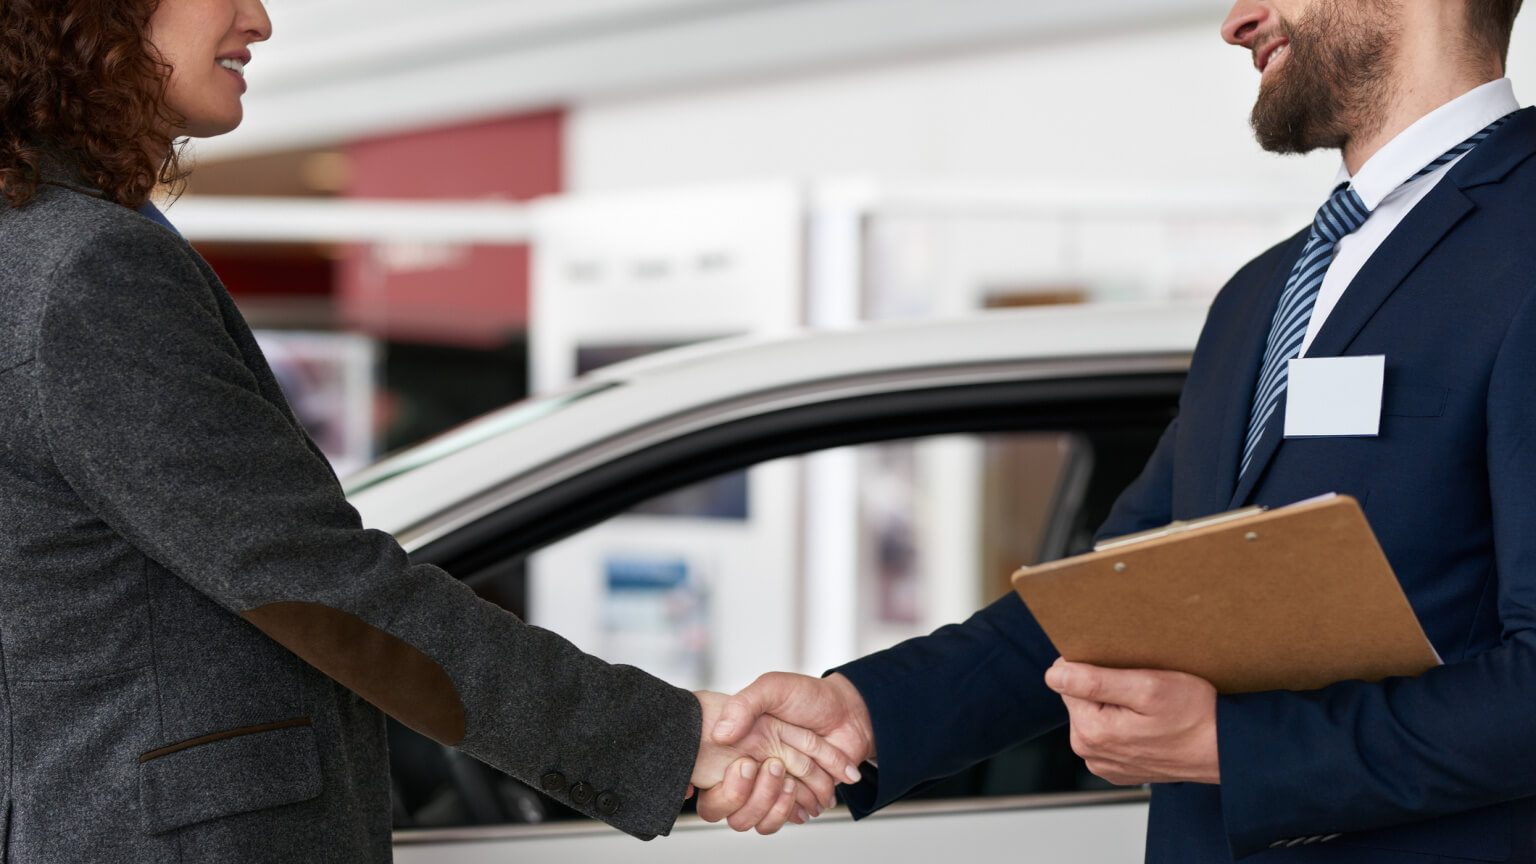 Two people shaking hands at an auto dealership